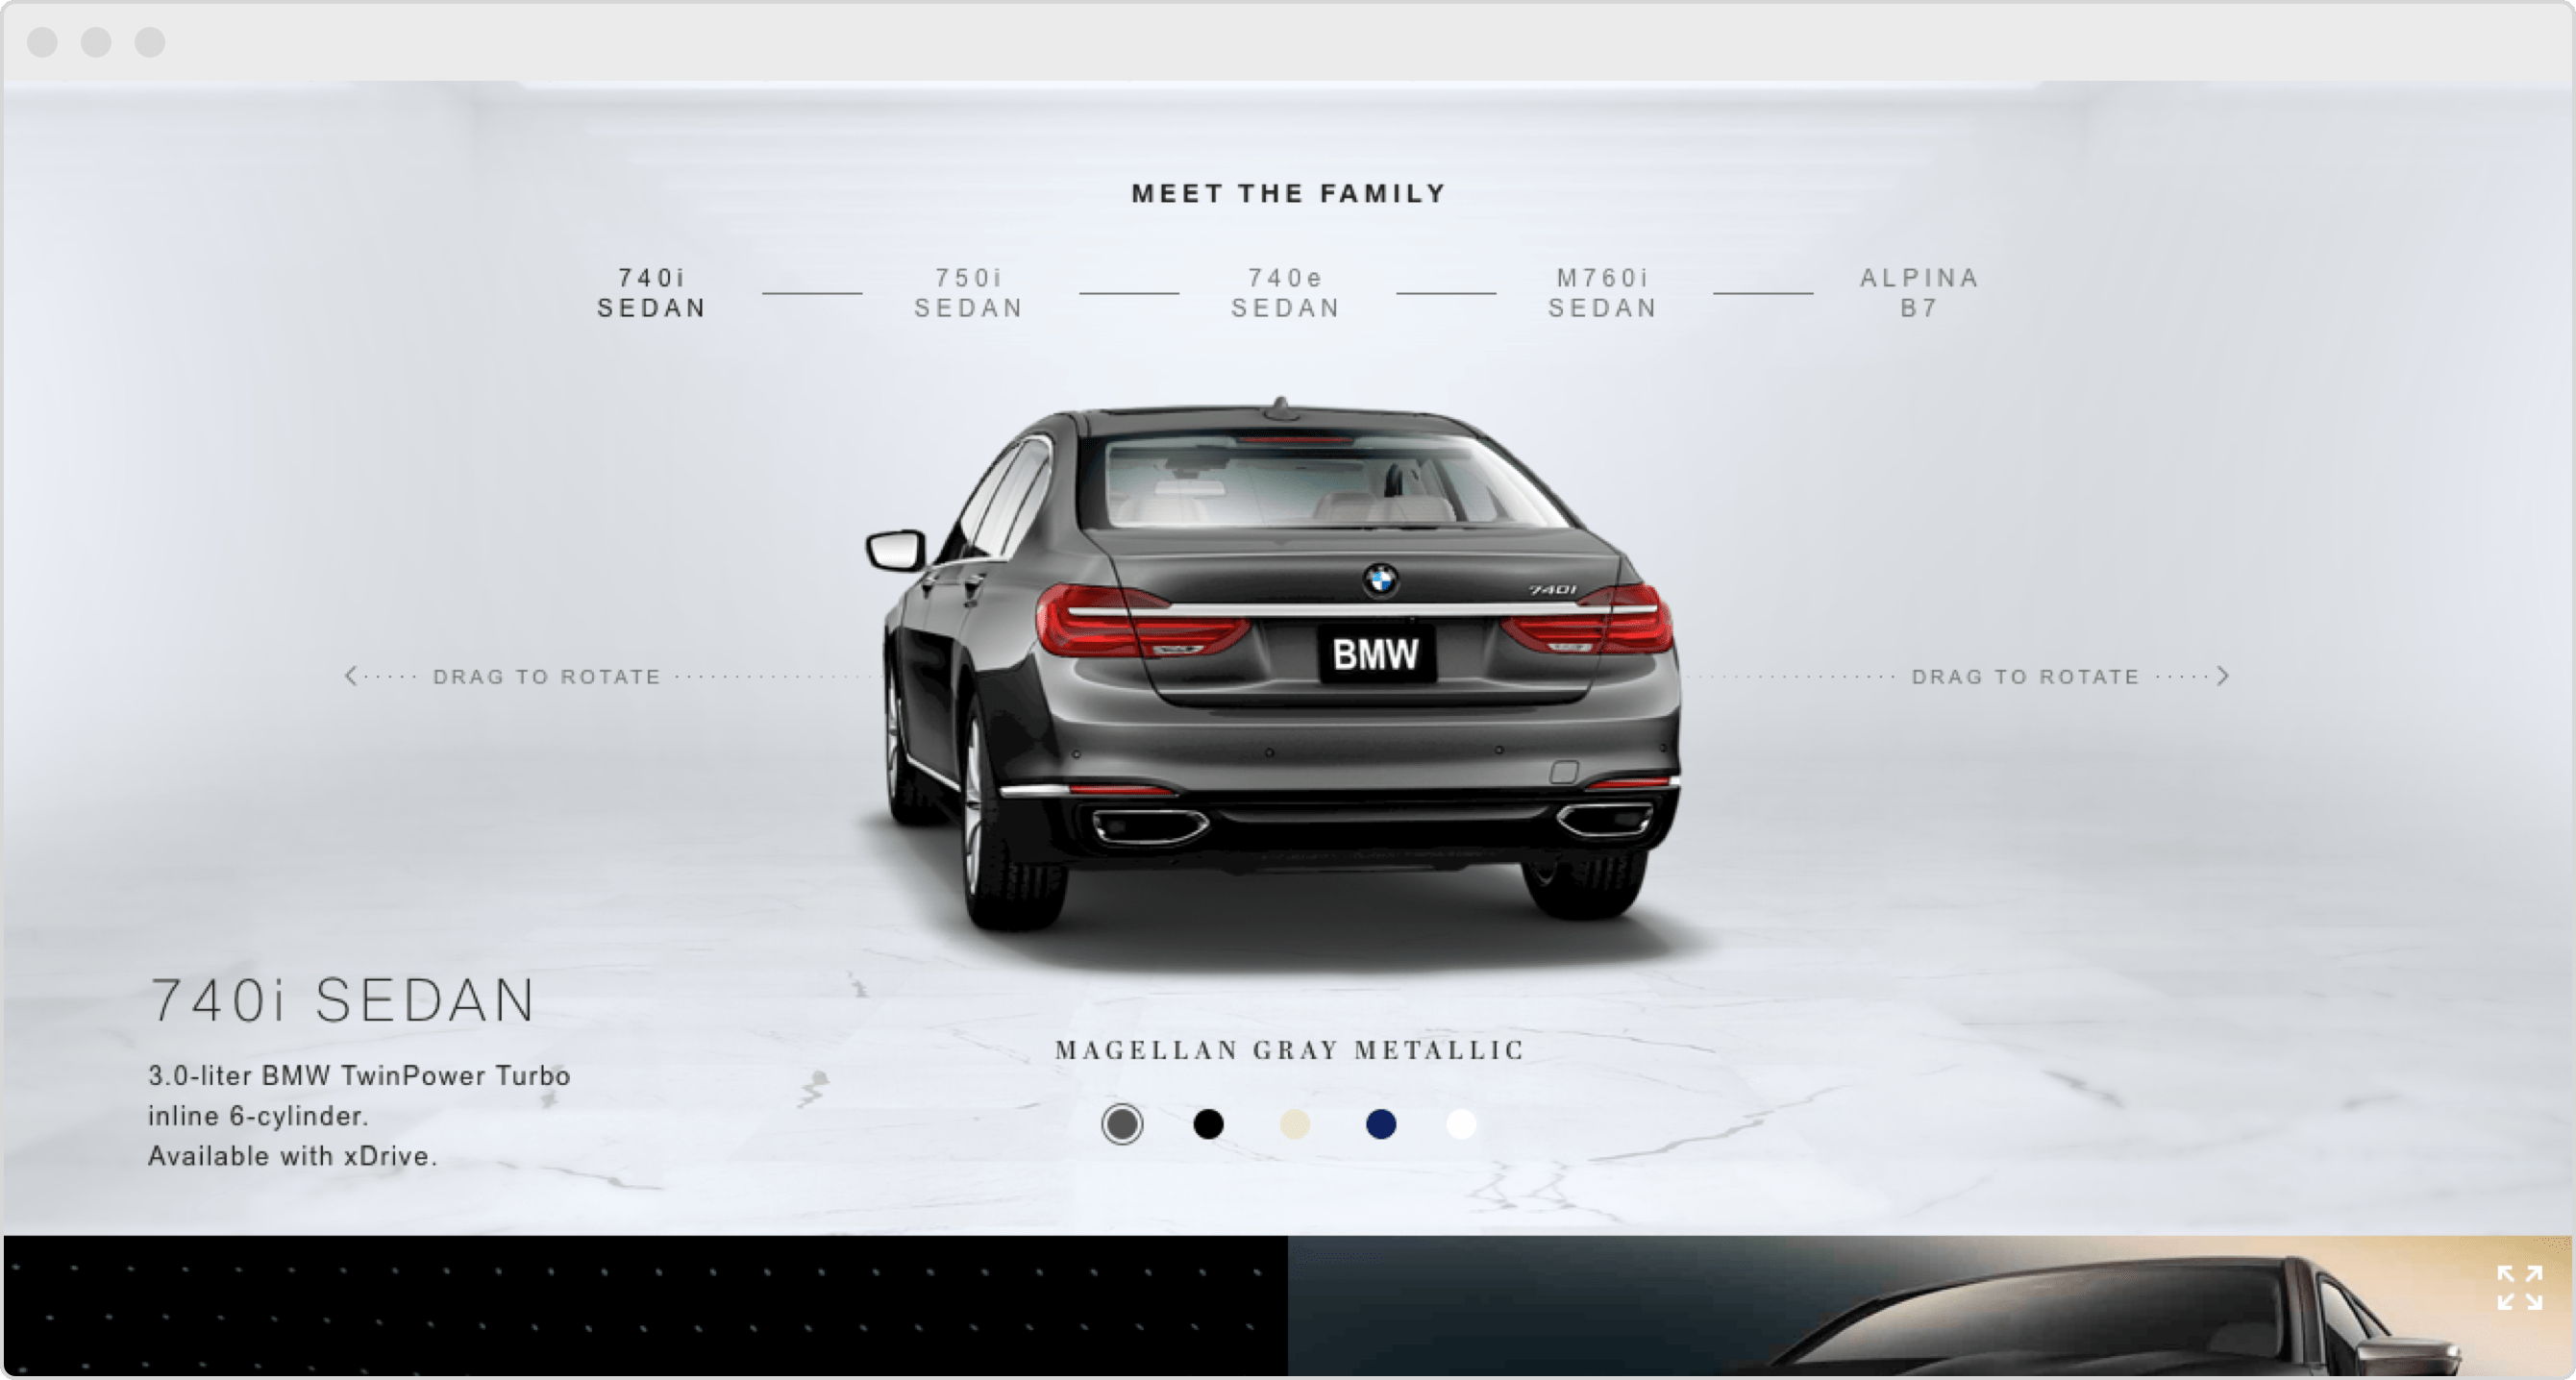 bmw_browser-7pdp